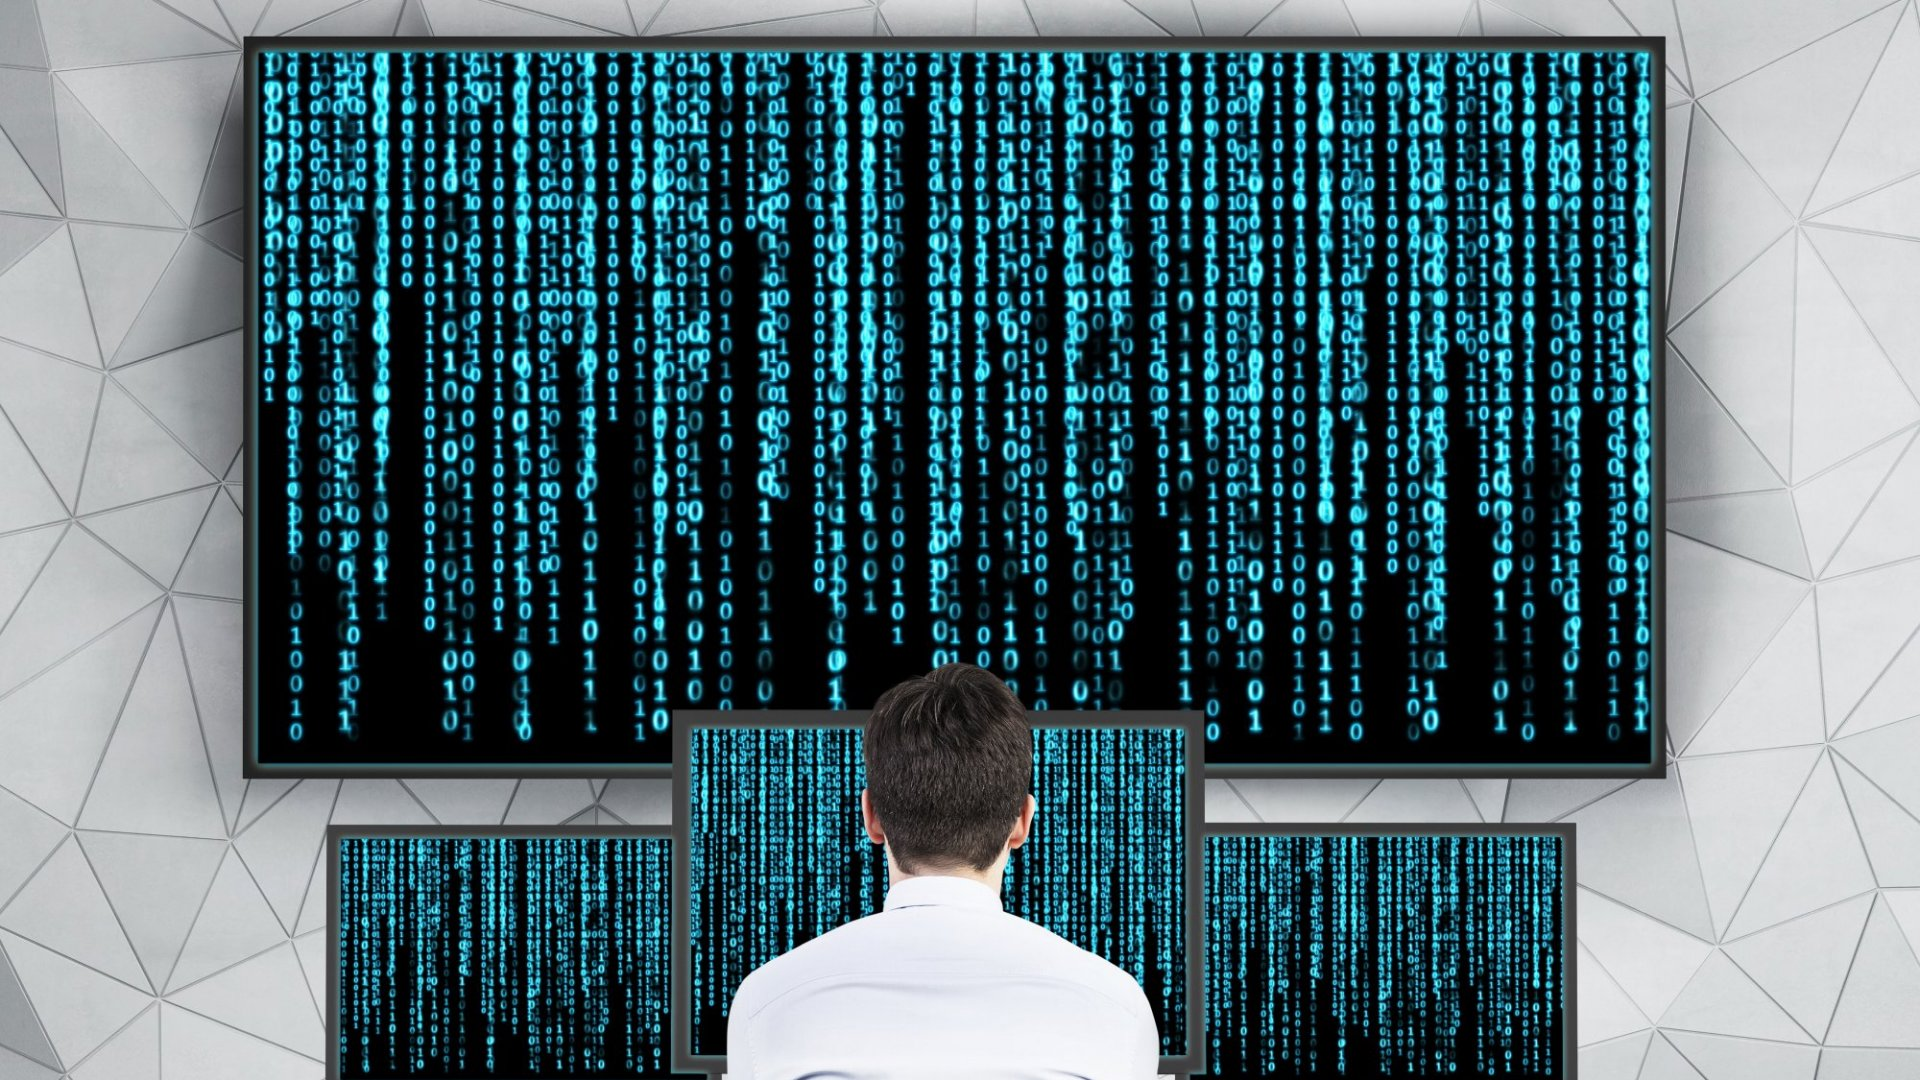 Resisting the Tyranny of Algorithms in the New Year